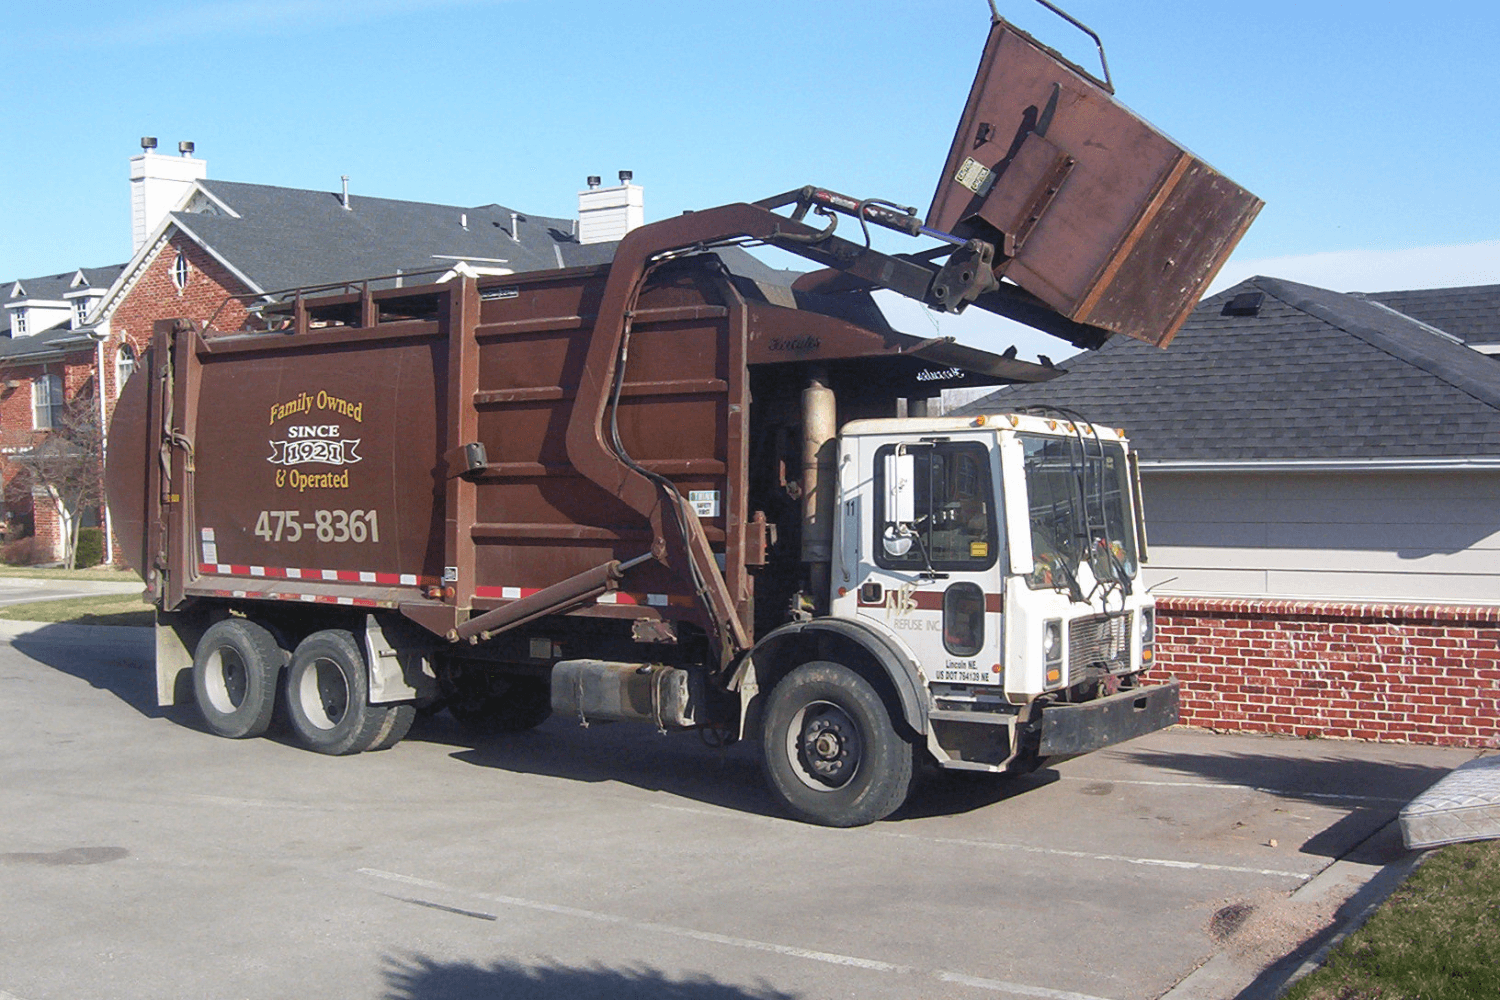 a commercial truck used for trash removal in Lincoln, NE